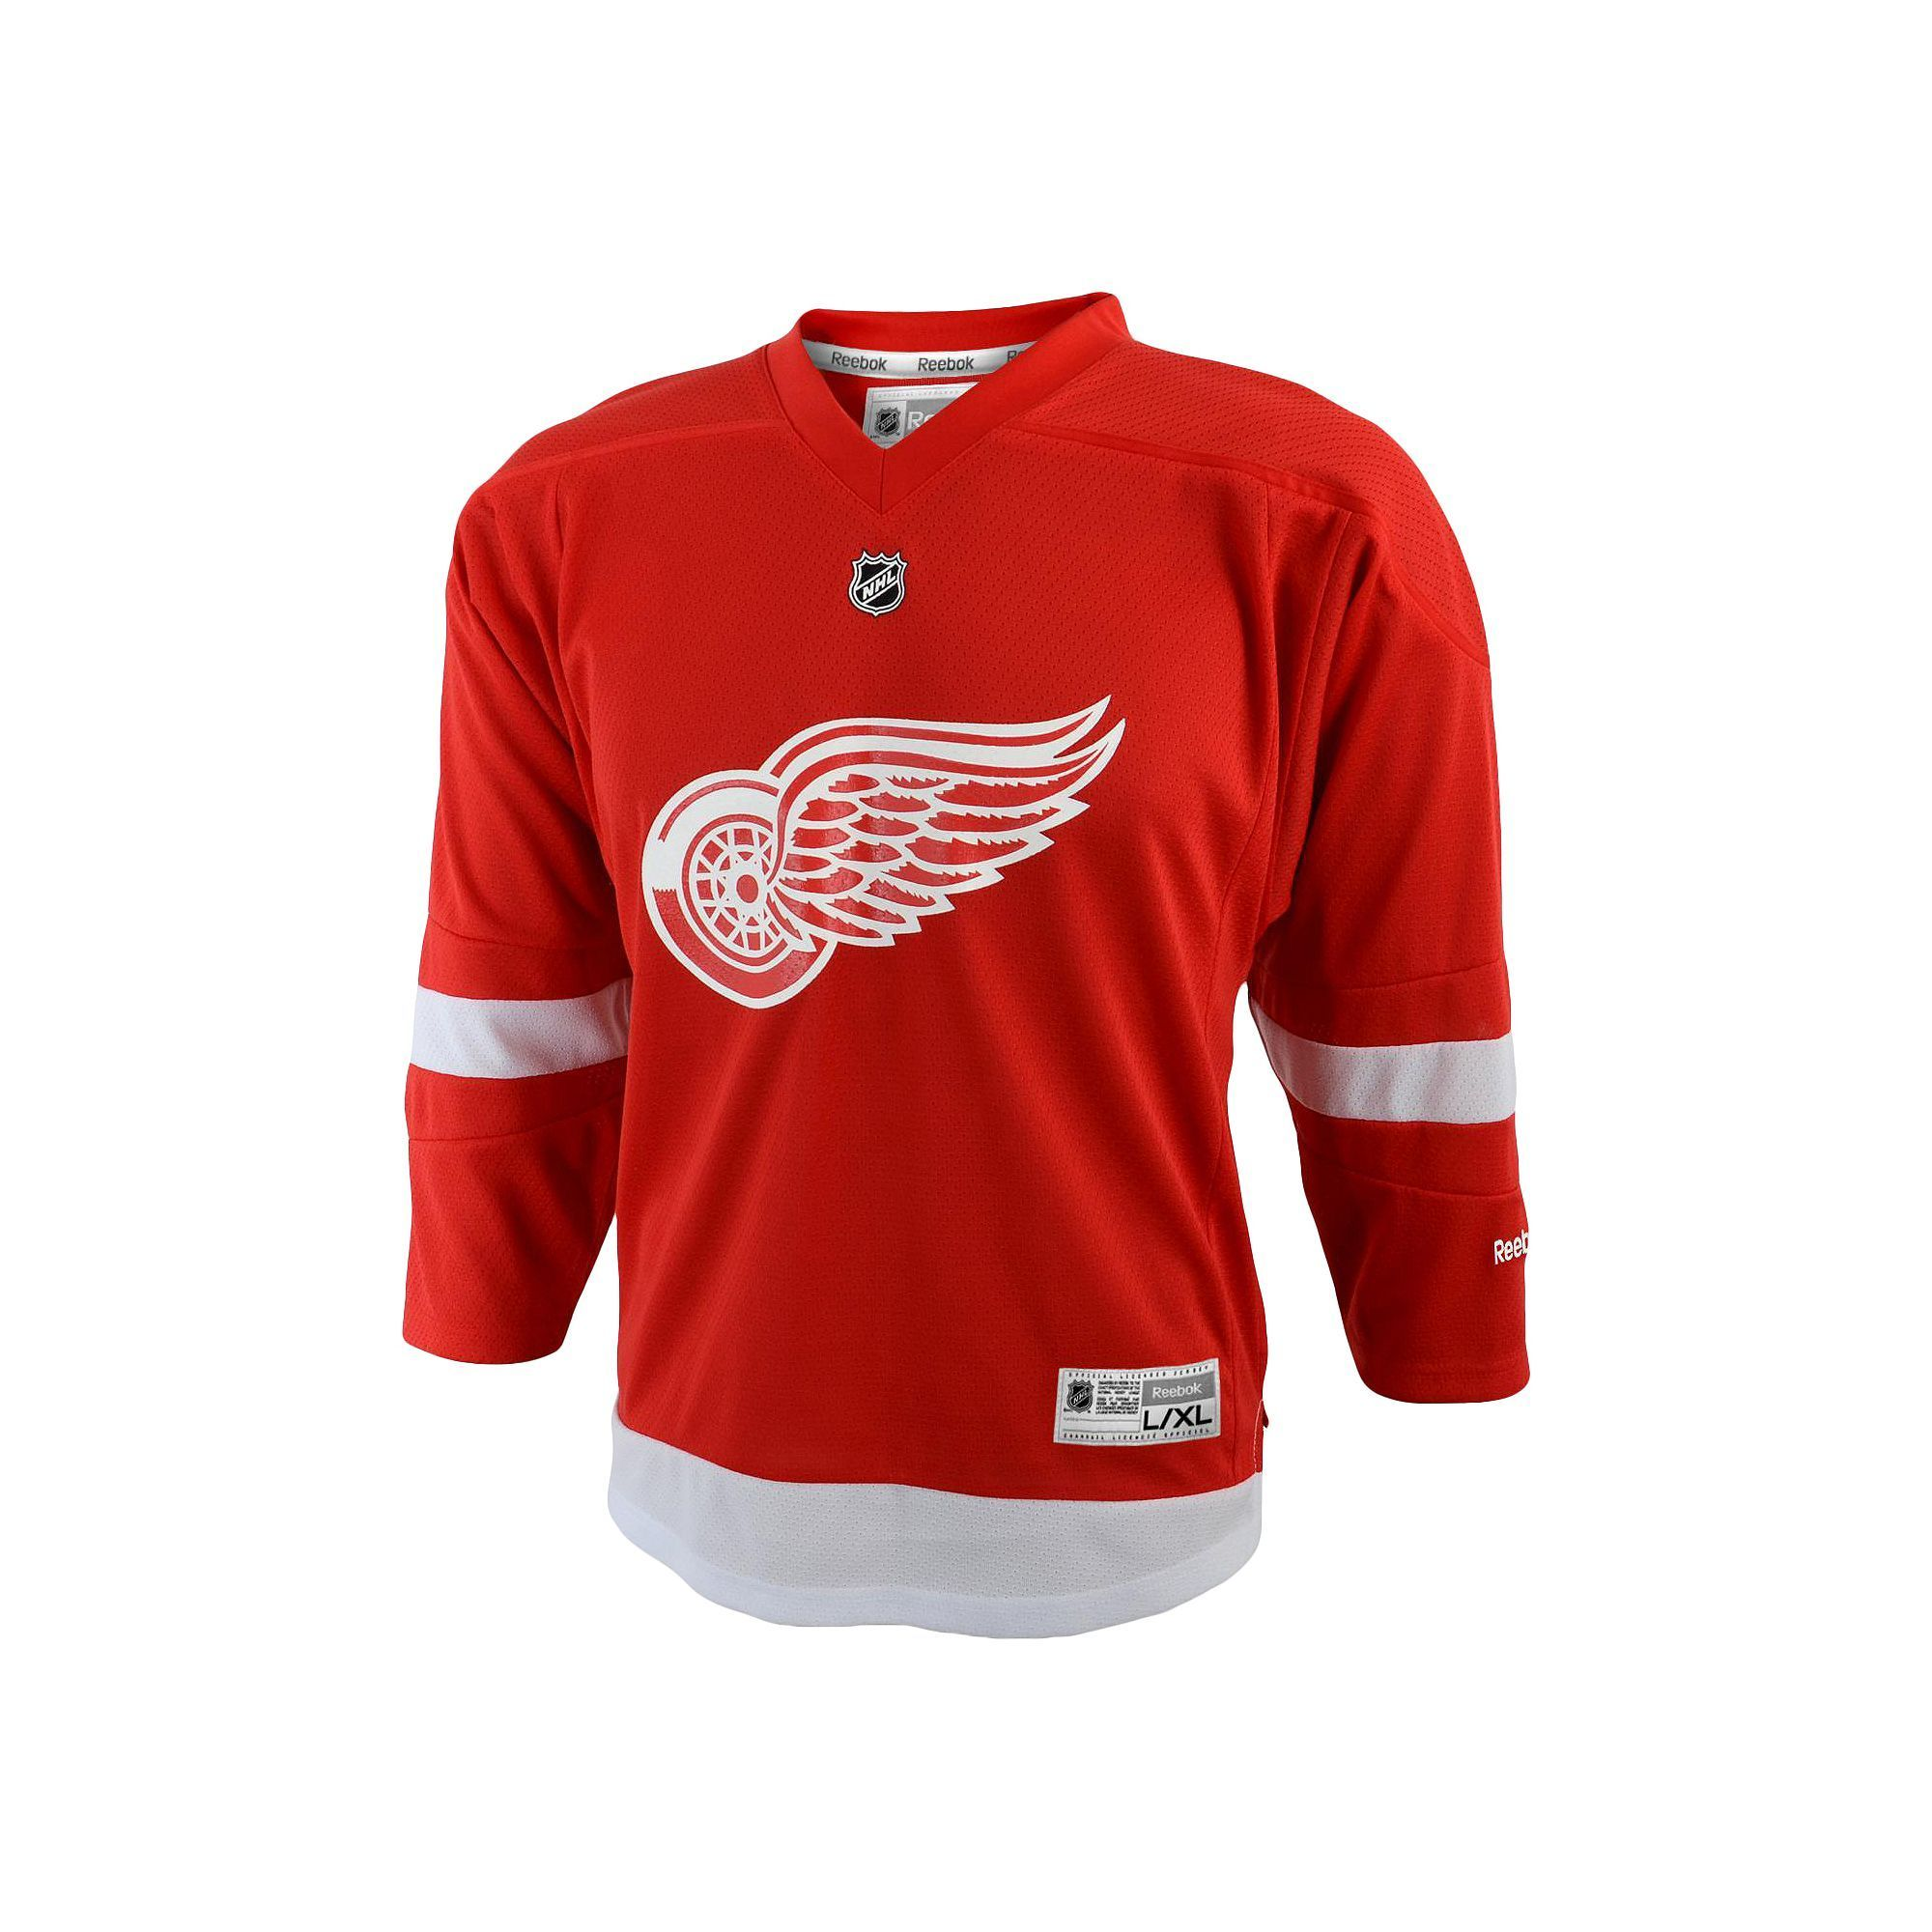 separation shoes e5d2e 61685 Toddler Reebok Detroit Red Wings Replica Jersey   Products ...